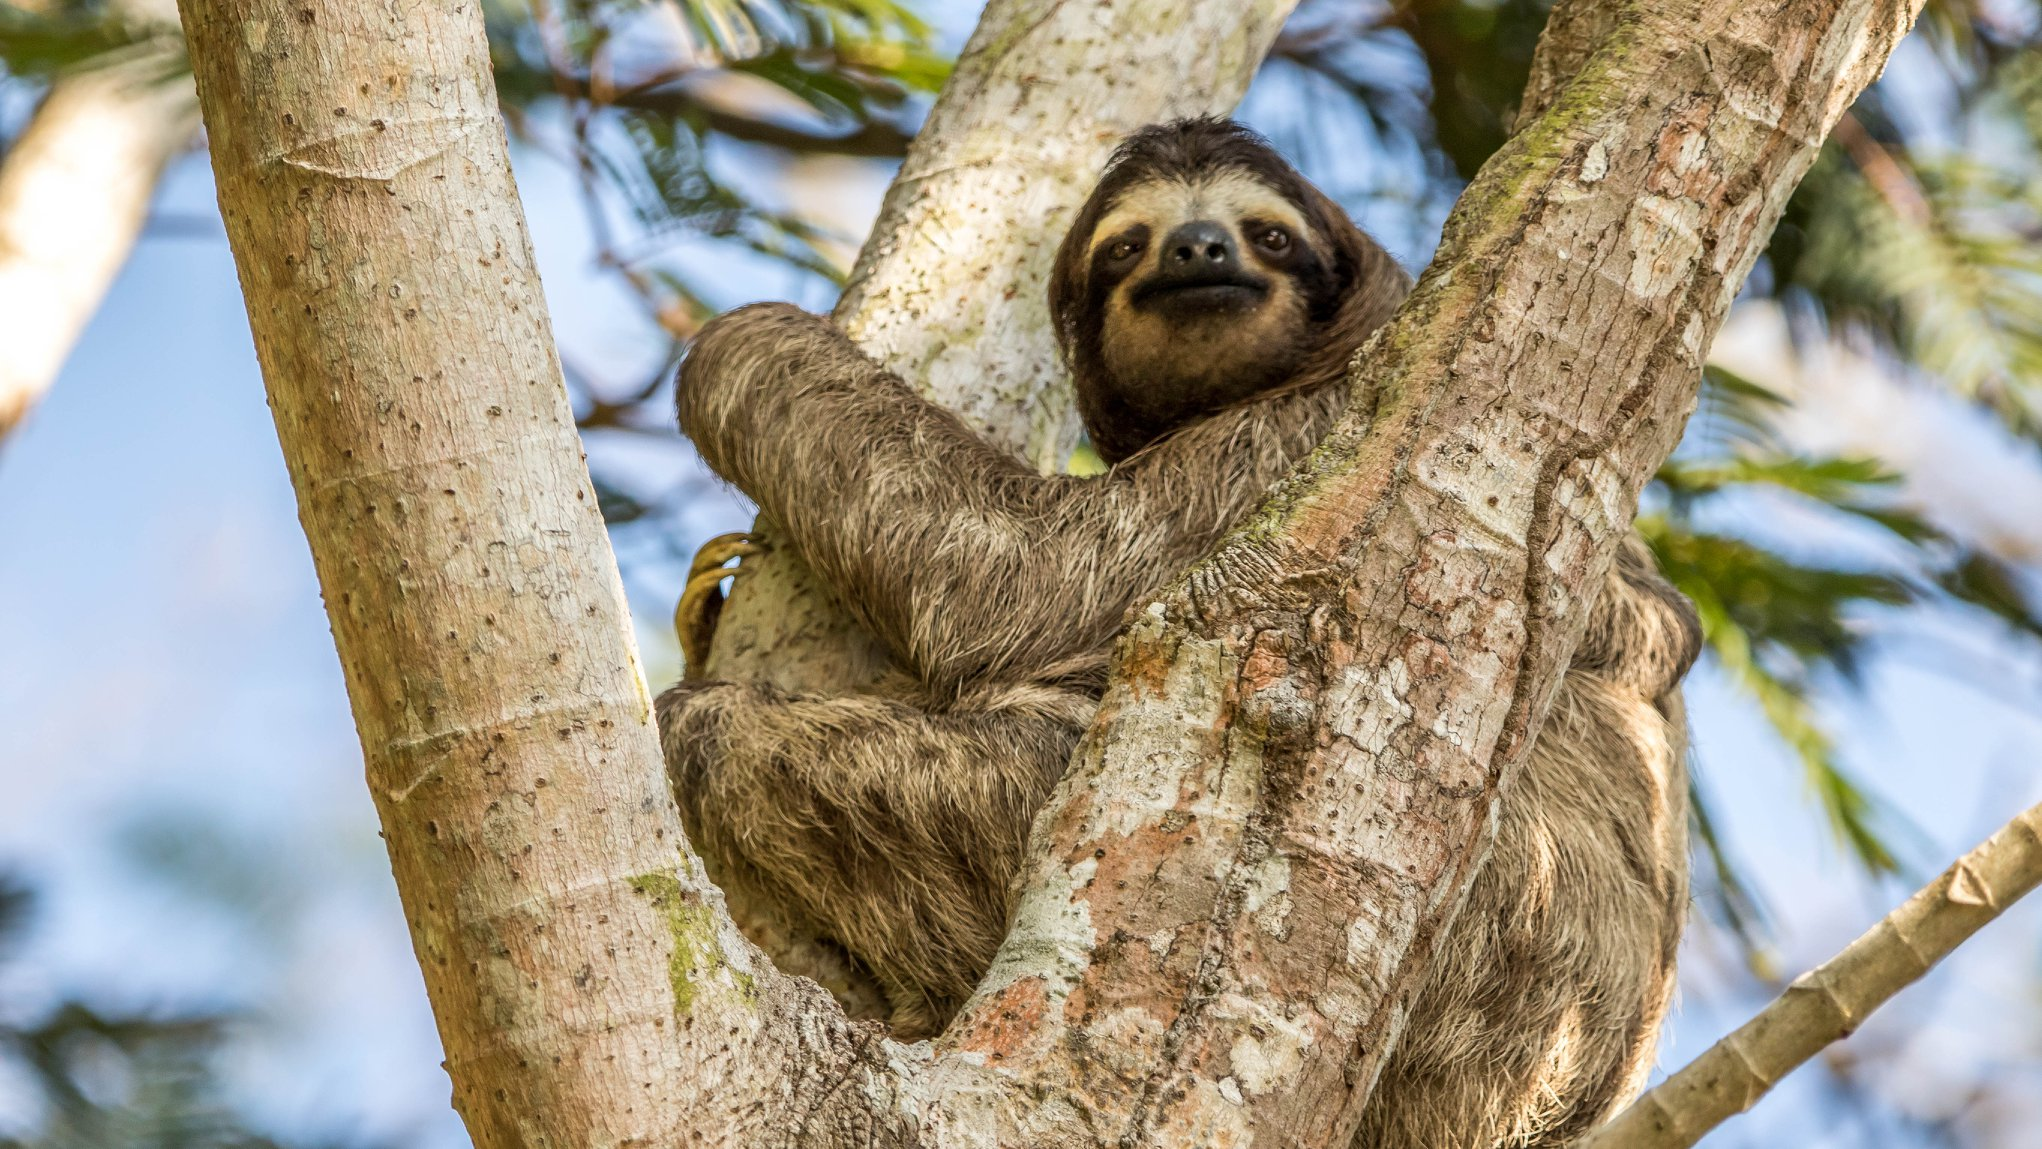 #Sloth two toed